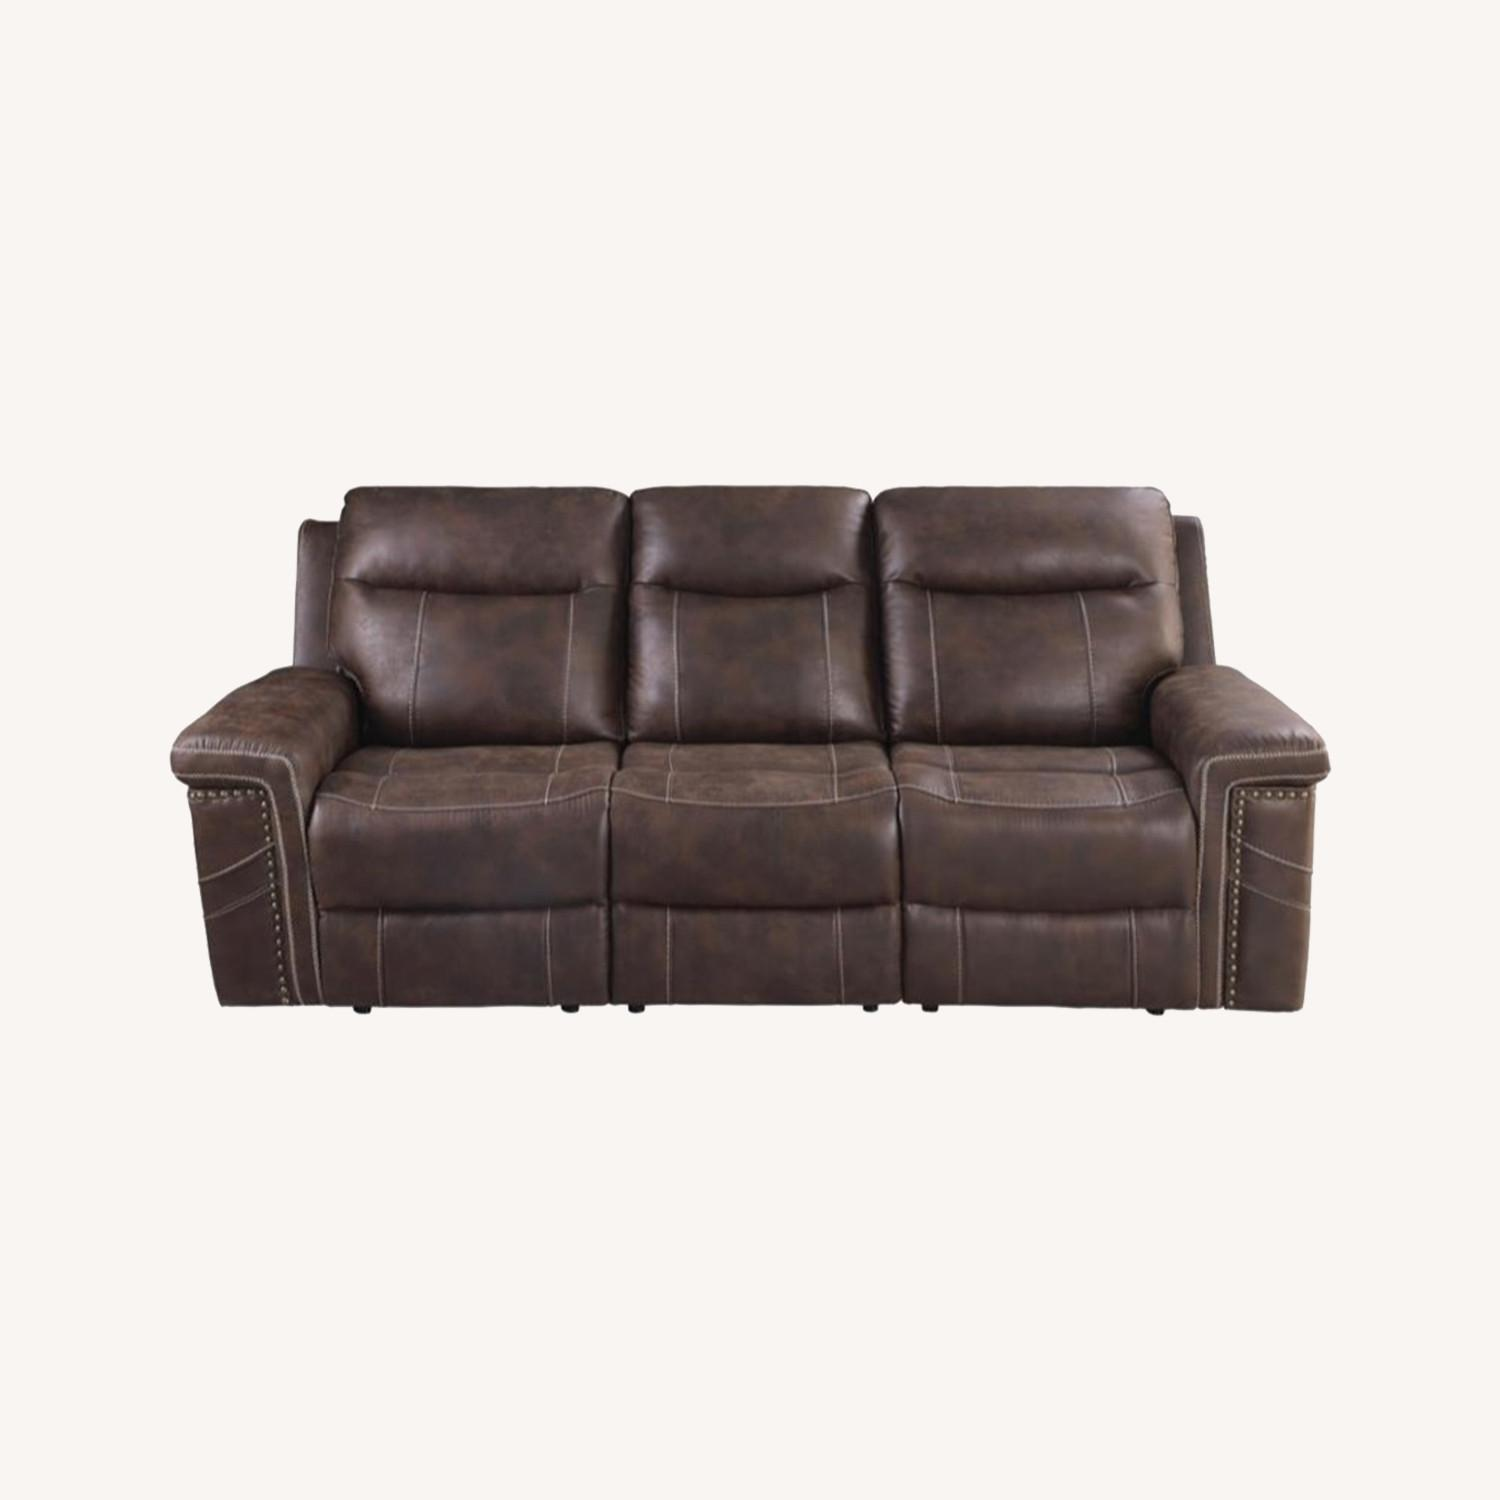 Power2 Sofa In Rich Brown Faux Suede - image-8